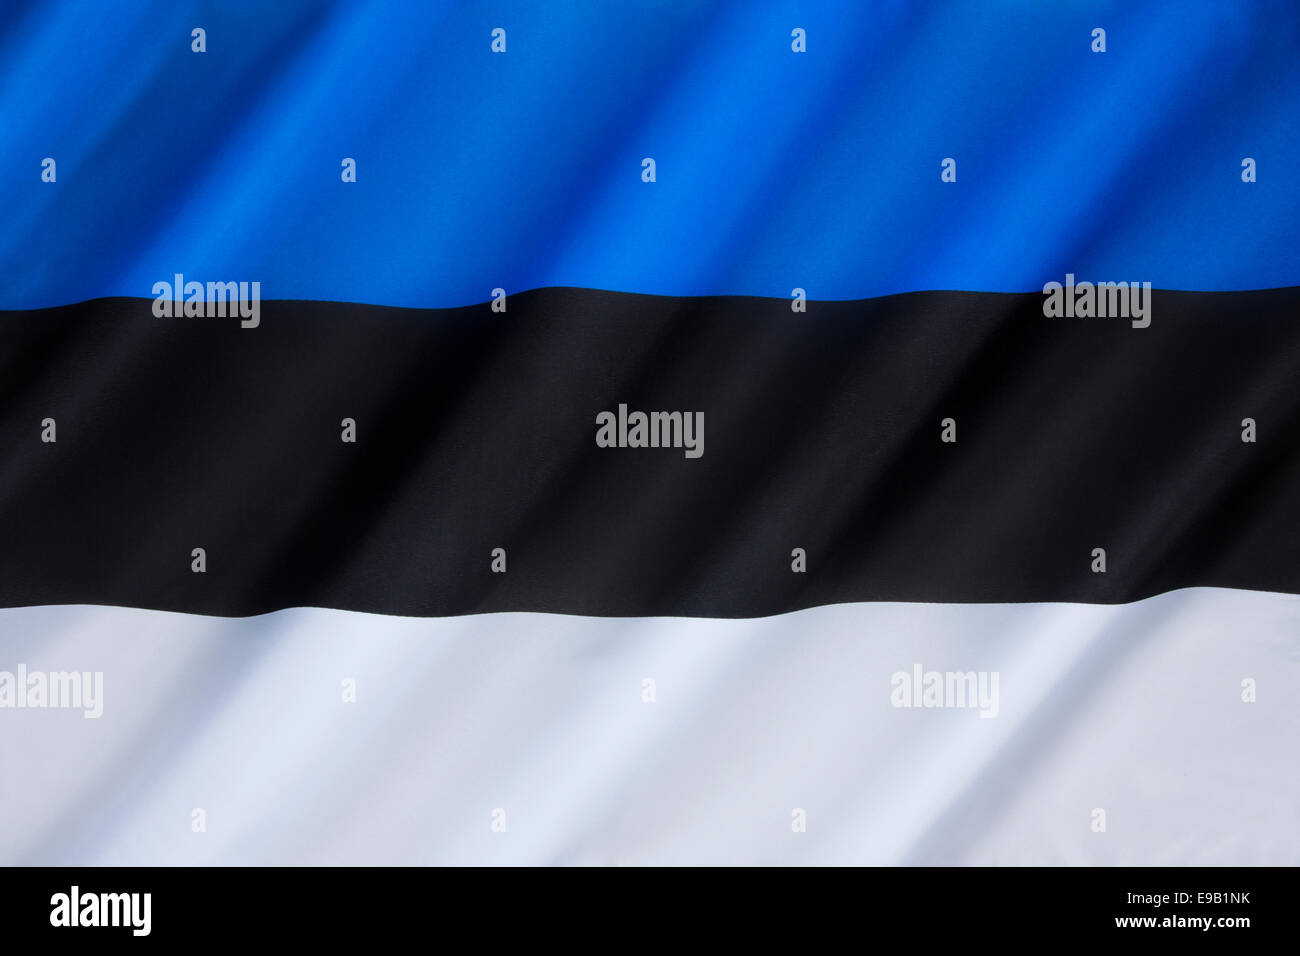 The national flag of Estonia - Stock Image